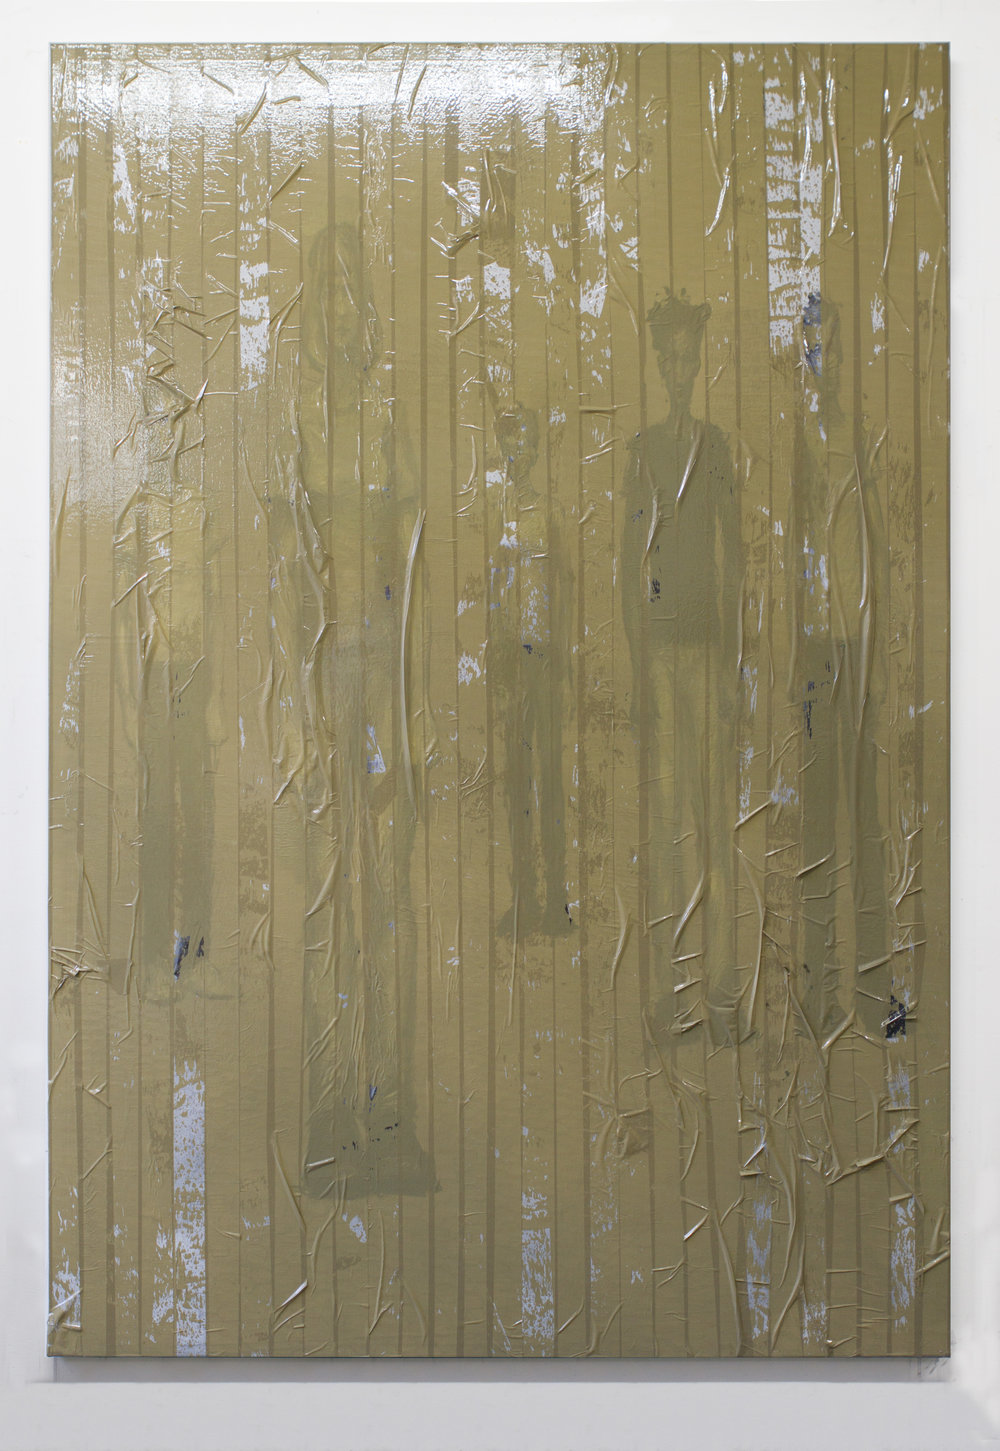 Punks Not Dead 2017 oil and packing tape on linen 70 x 48 inches